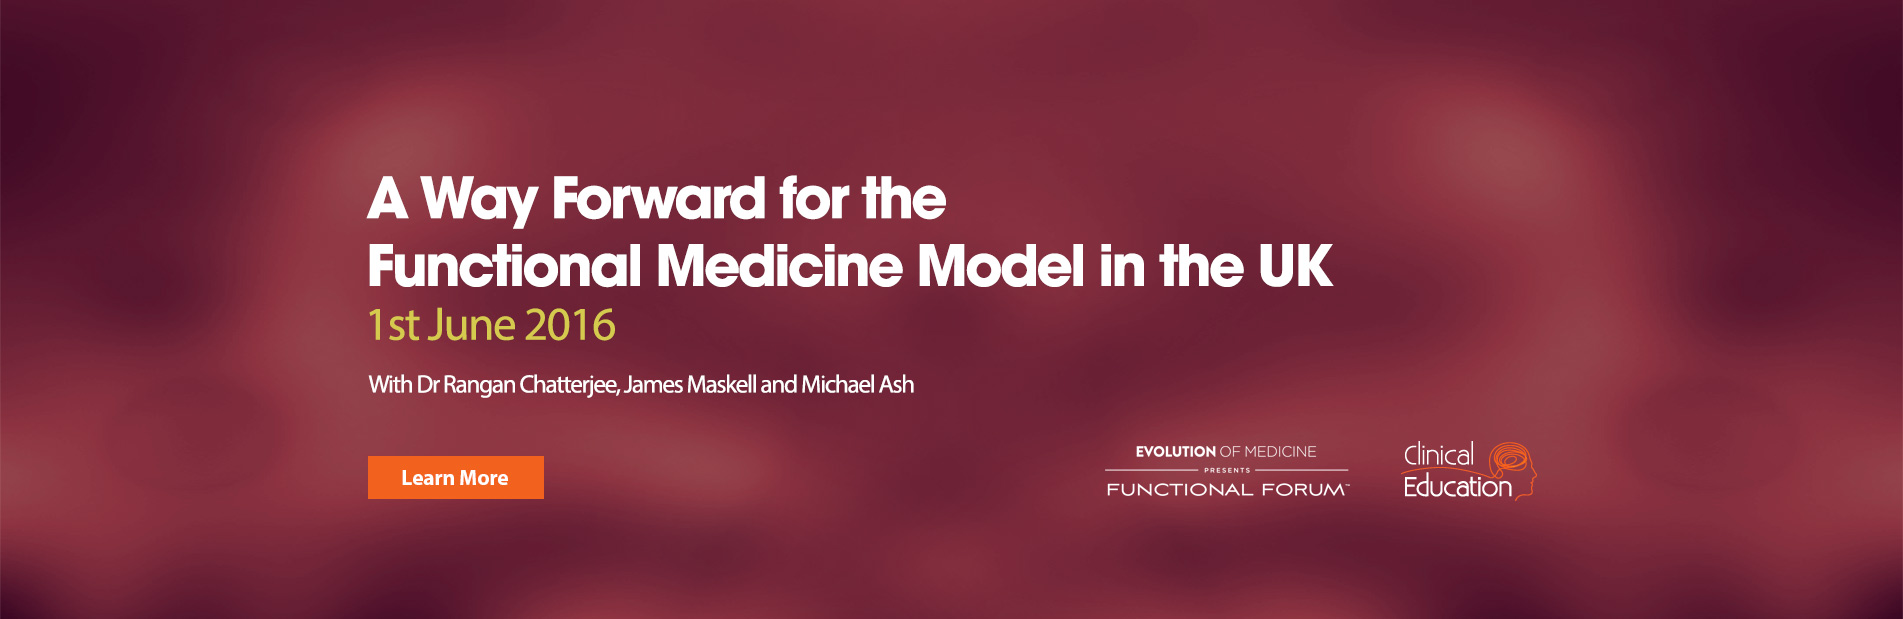 main-slider-hme-functional-medicine-model